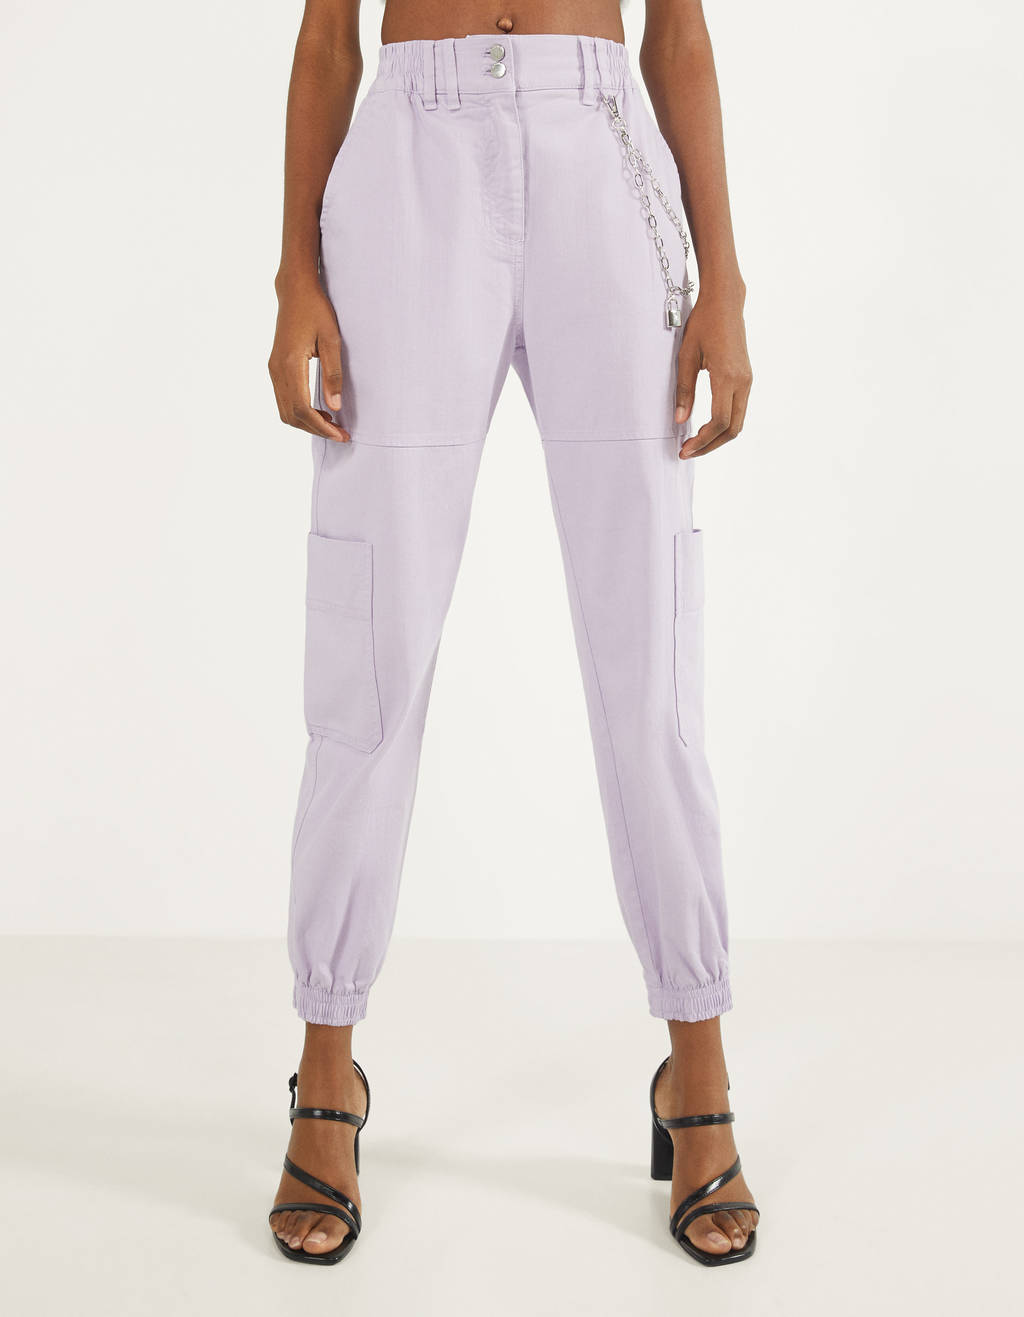 Pantalones Anchos Chandal Mujer 57 Descuento Gigarobot Net